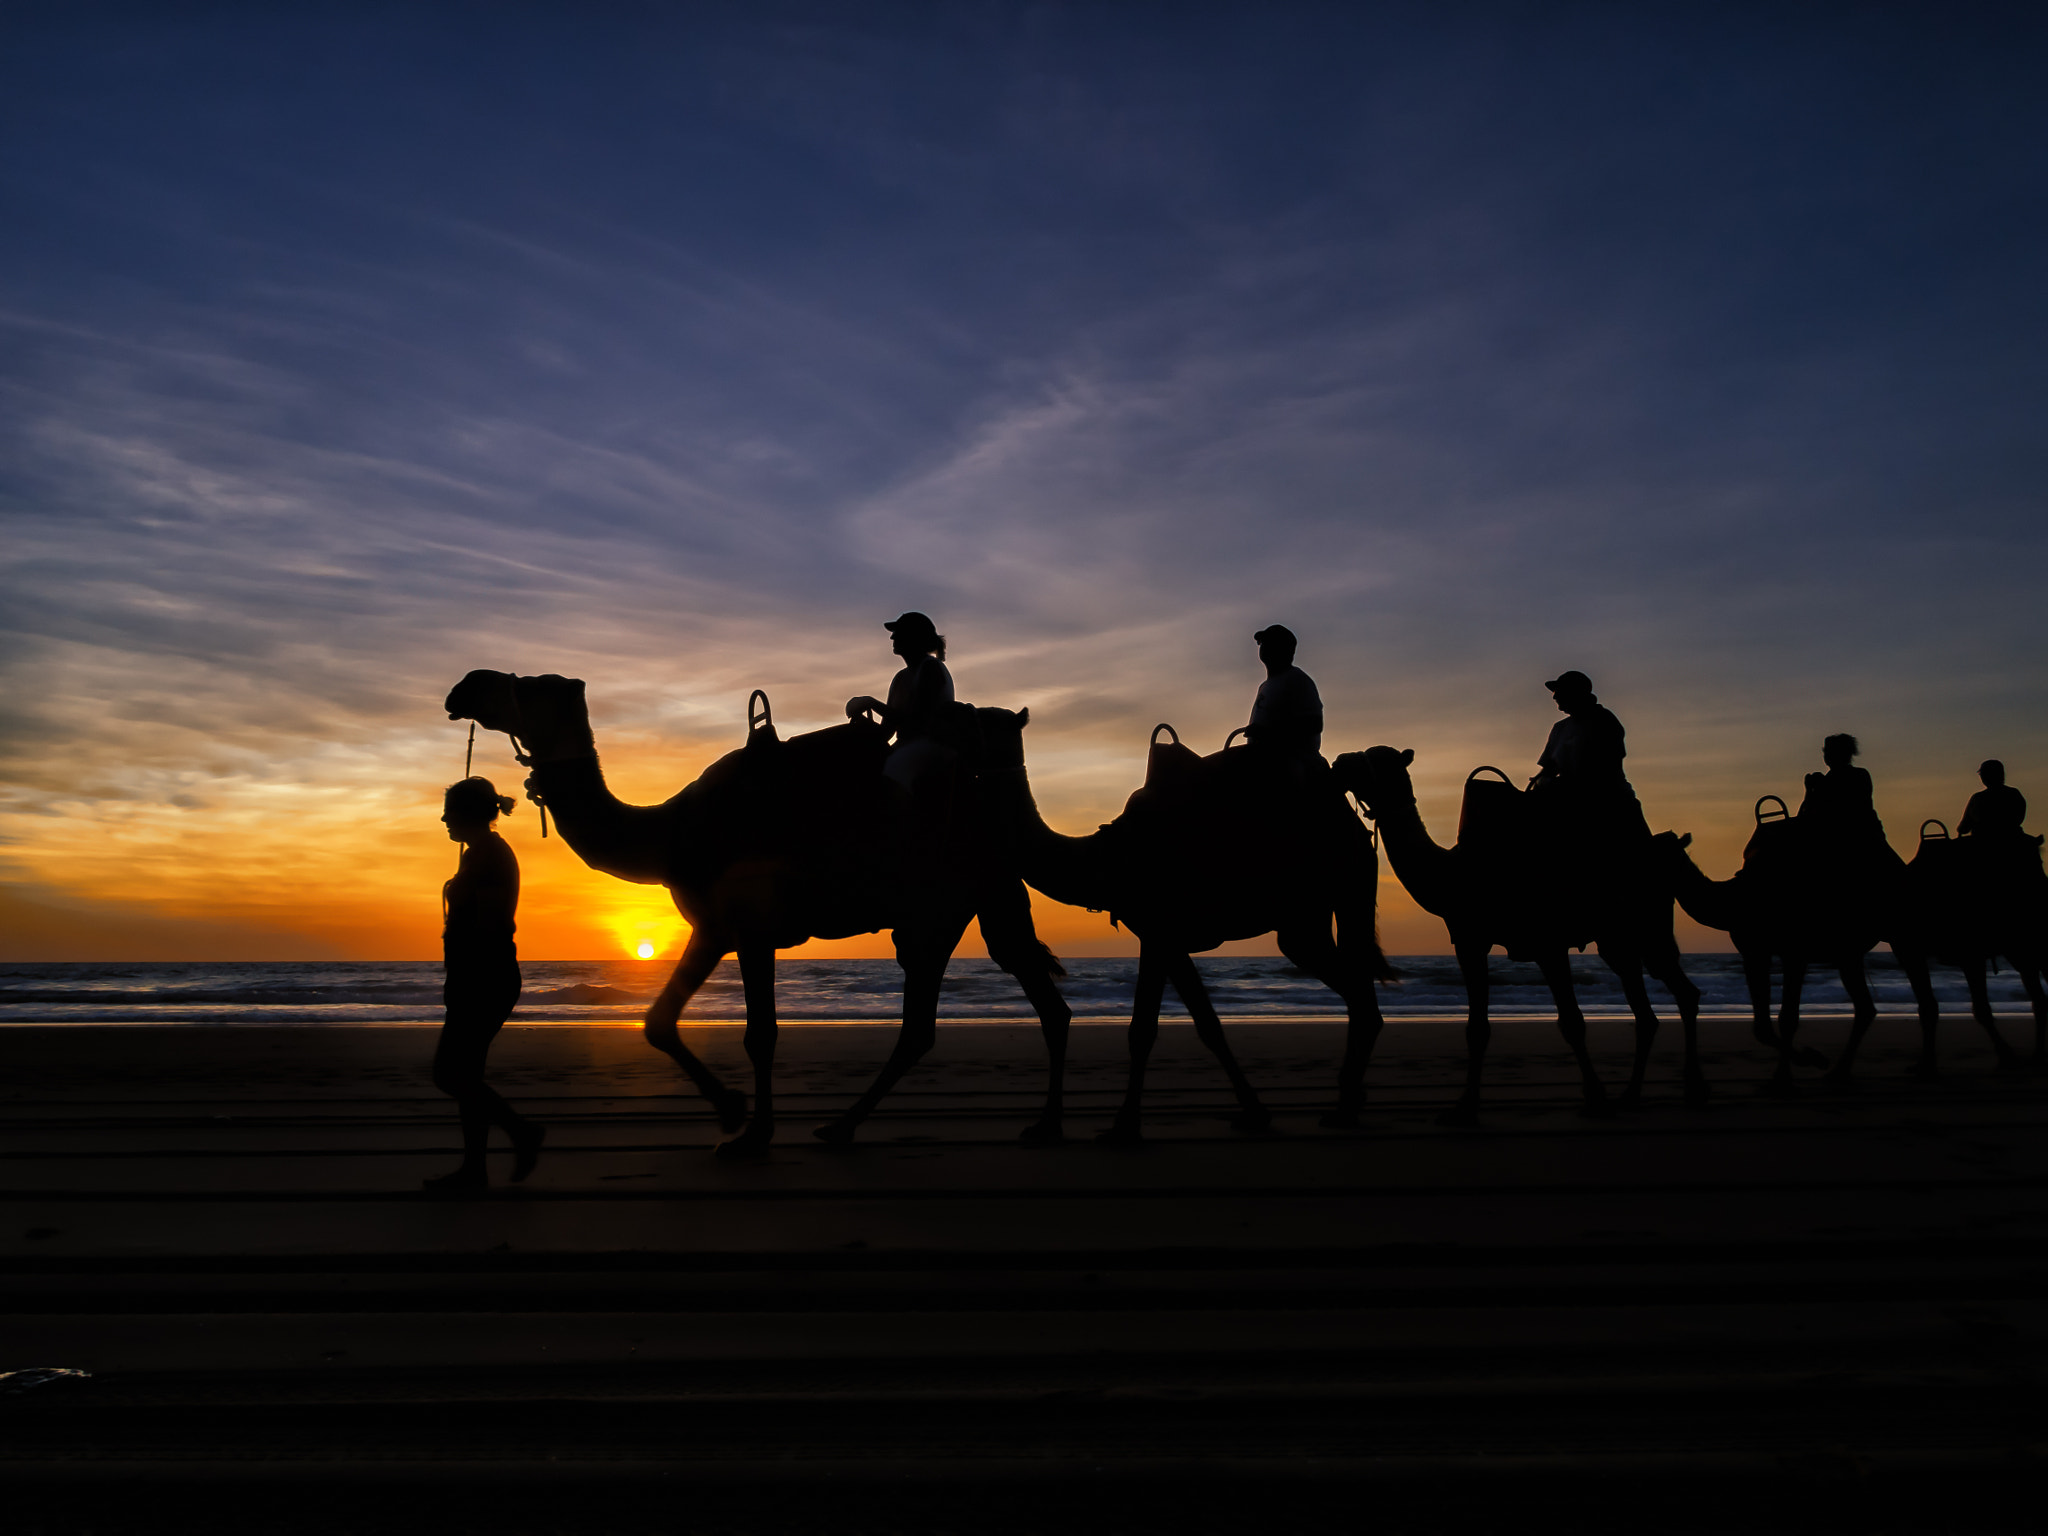 Photograph Sunset Ride in WA by PaulEmmingsPhotography  on 500px